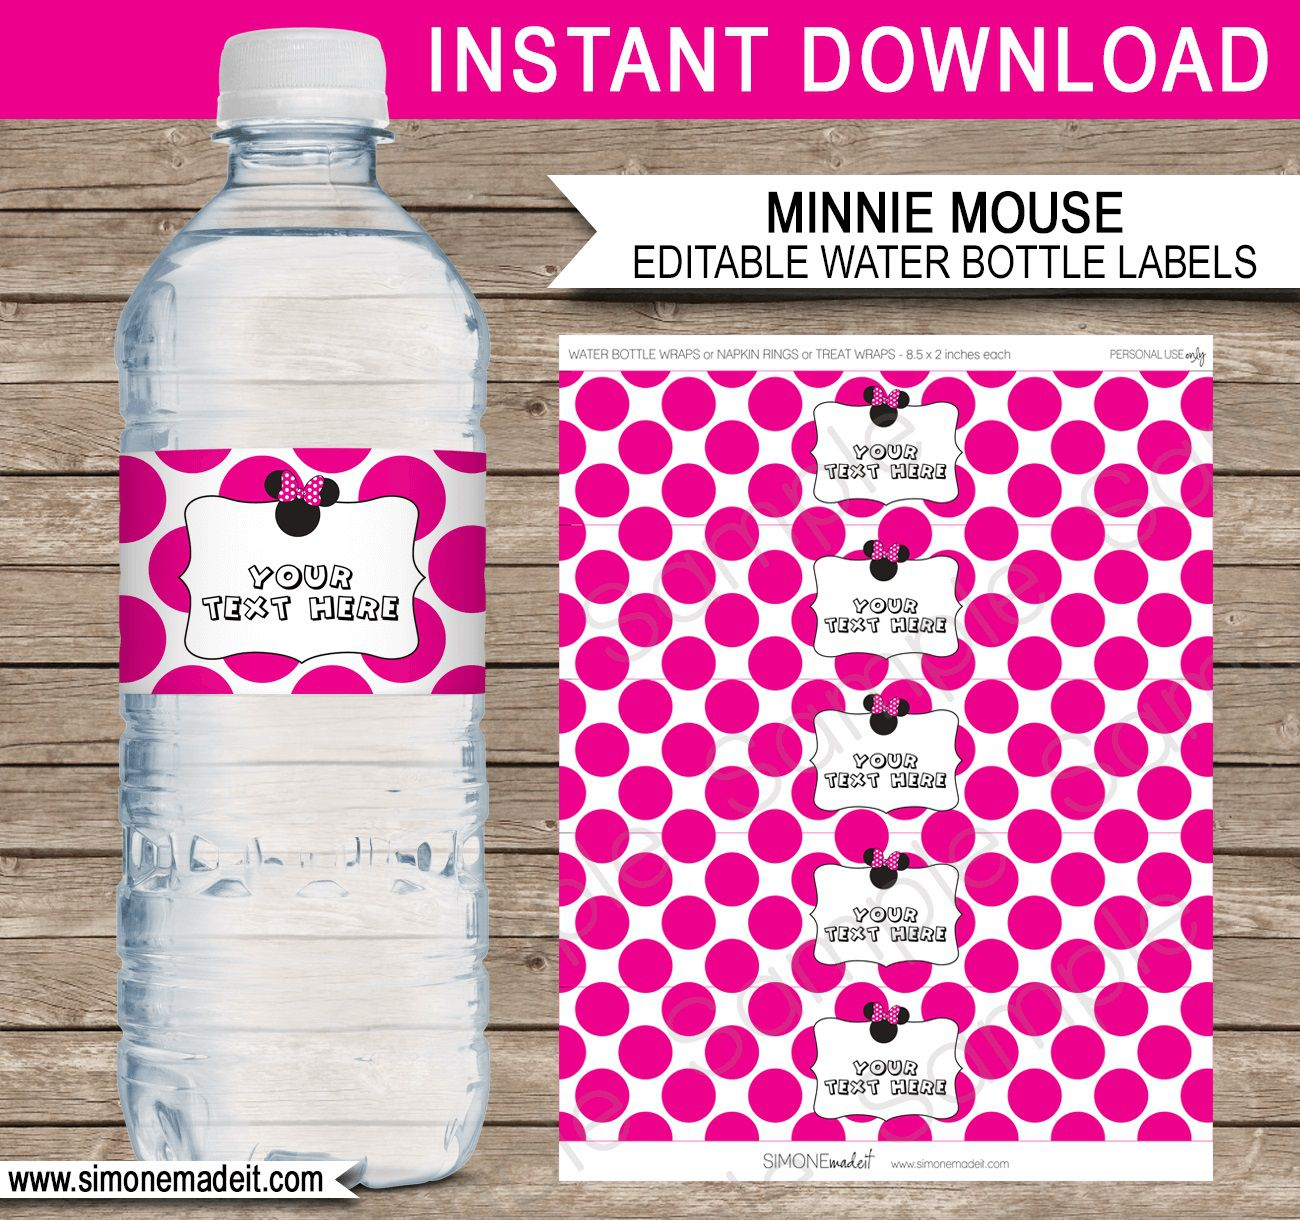 007 Impressive Water Bottle Label Template Example  Free Photoshop Baby Shower PsdFull